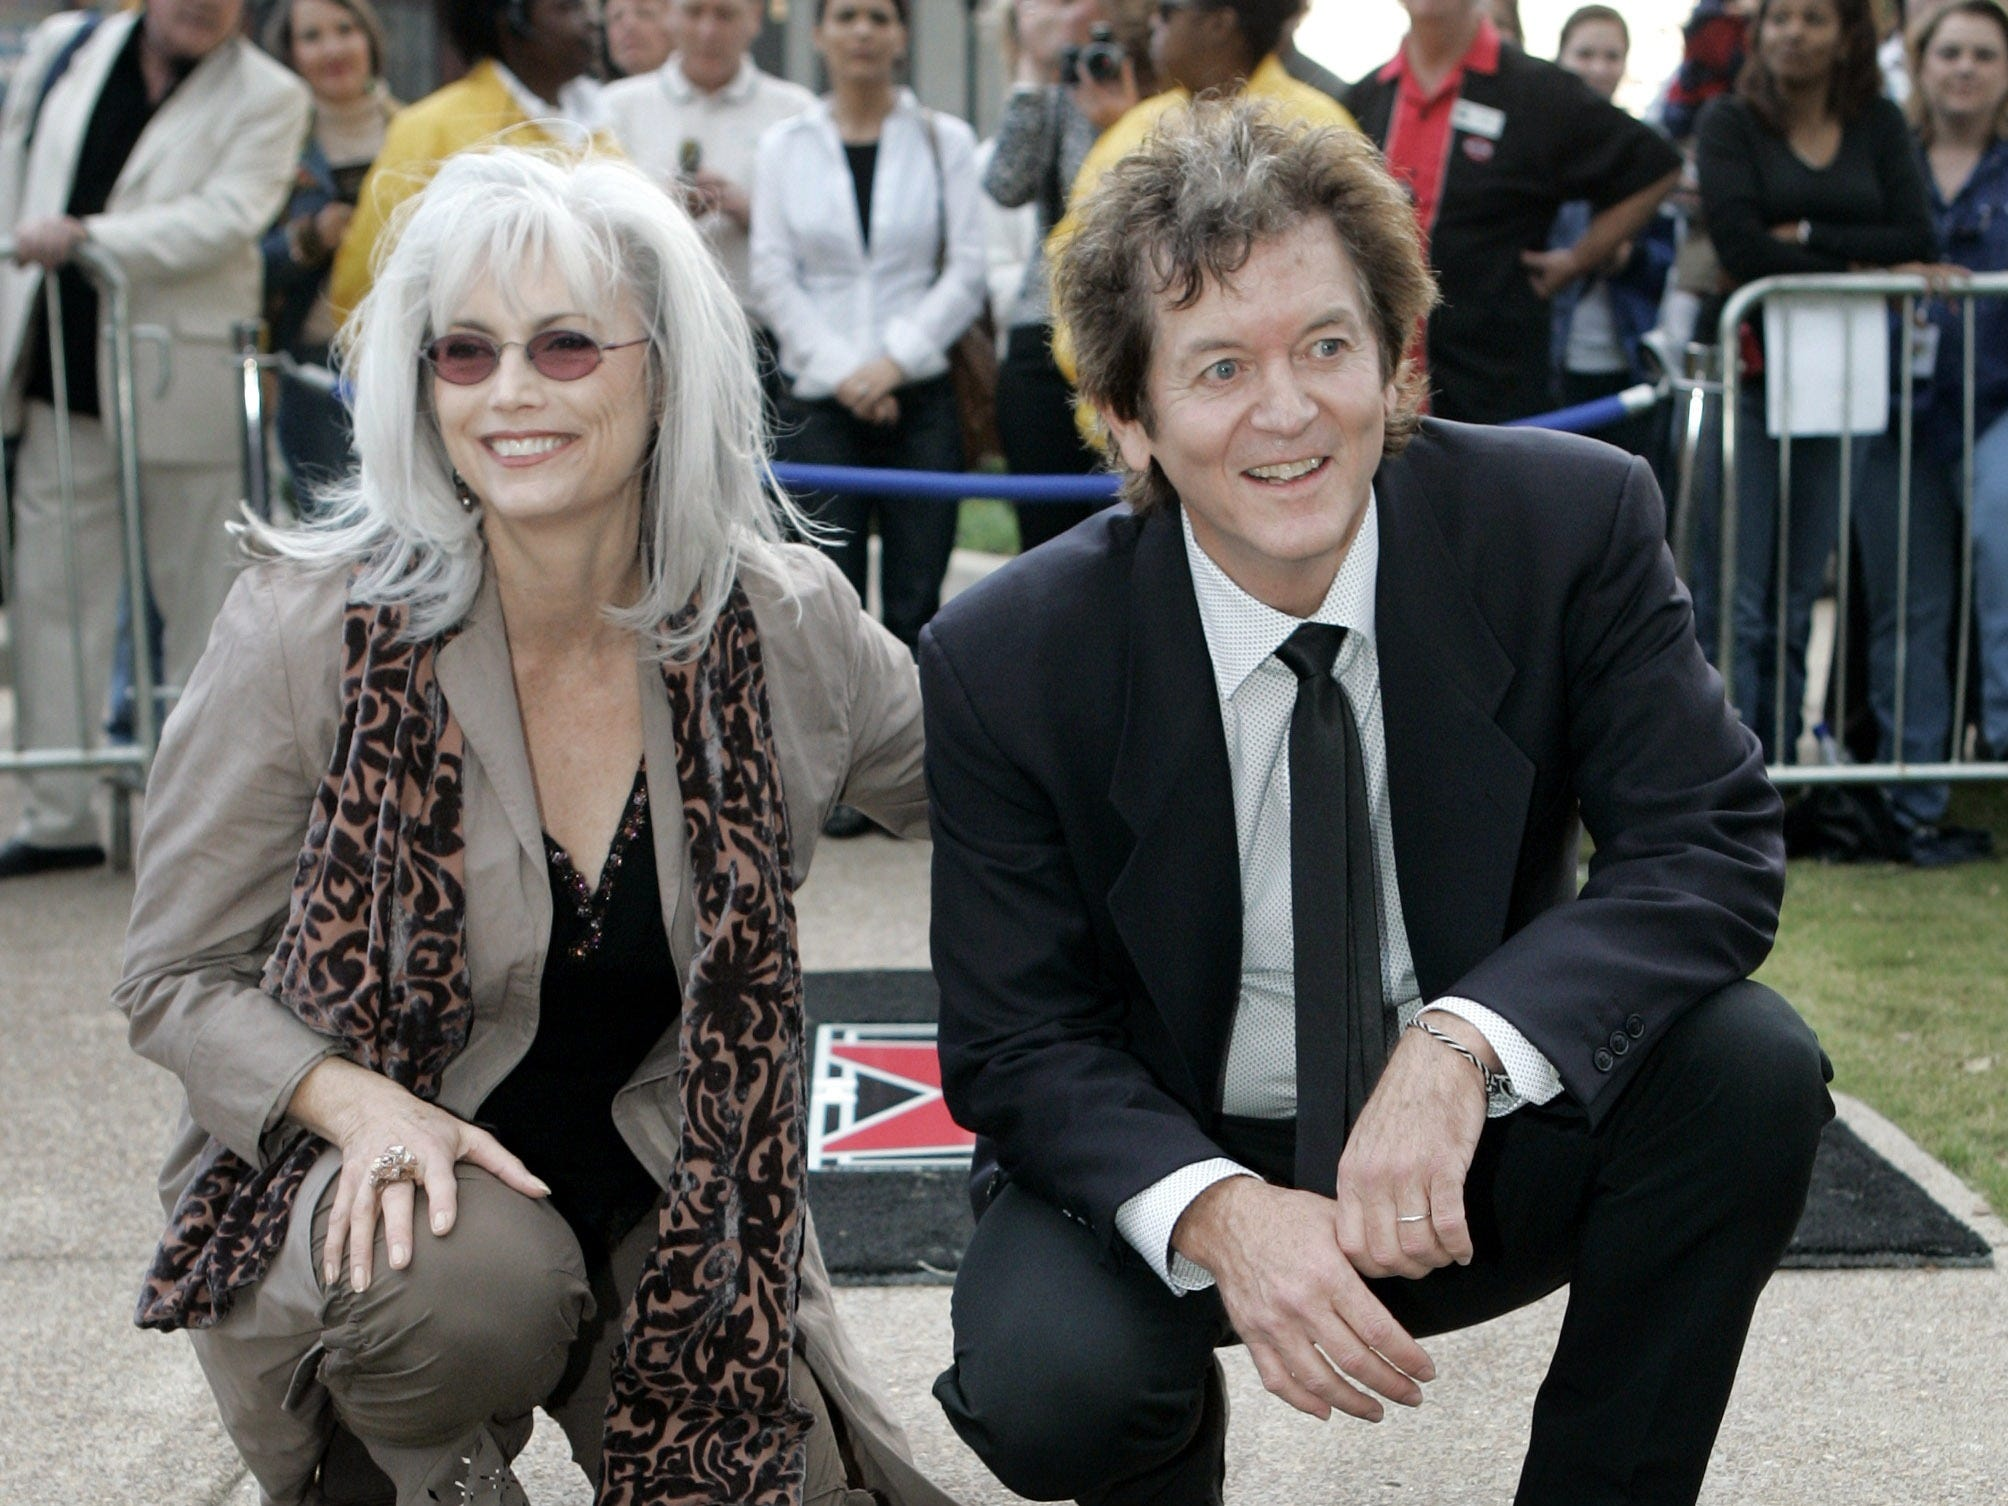 Rodney Crowell poses by his star in the Music City Walk of Fame in Nashville, Tennessee, on Nov. 5, 2007. Emmylou Harris introduced Crowell at the ceremony.